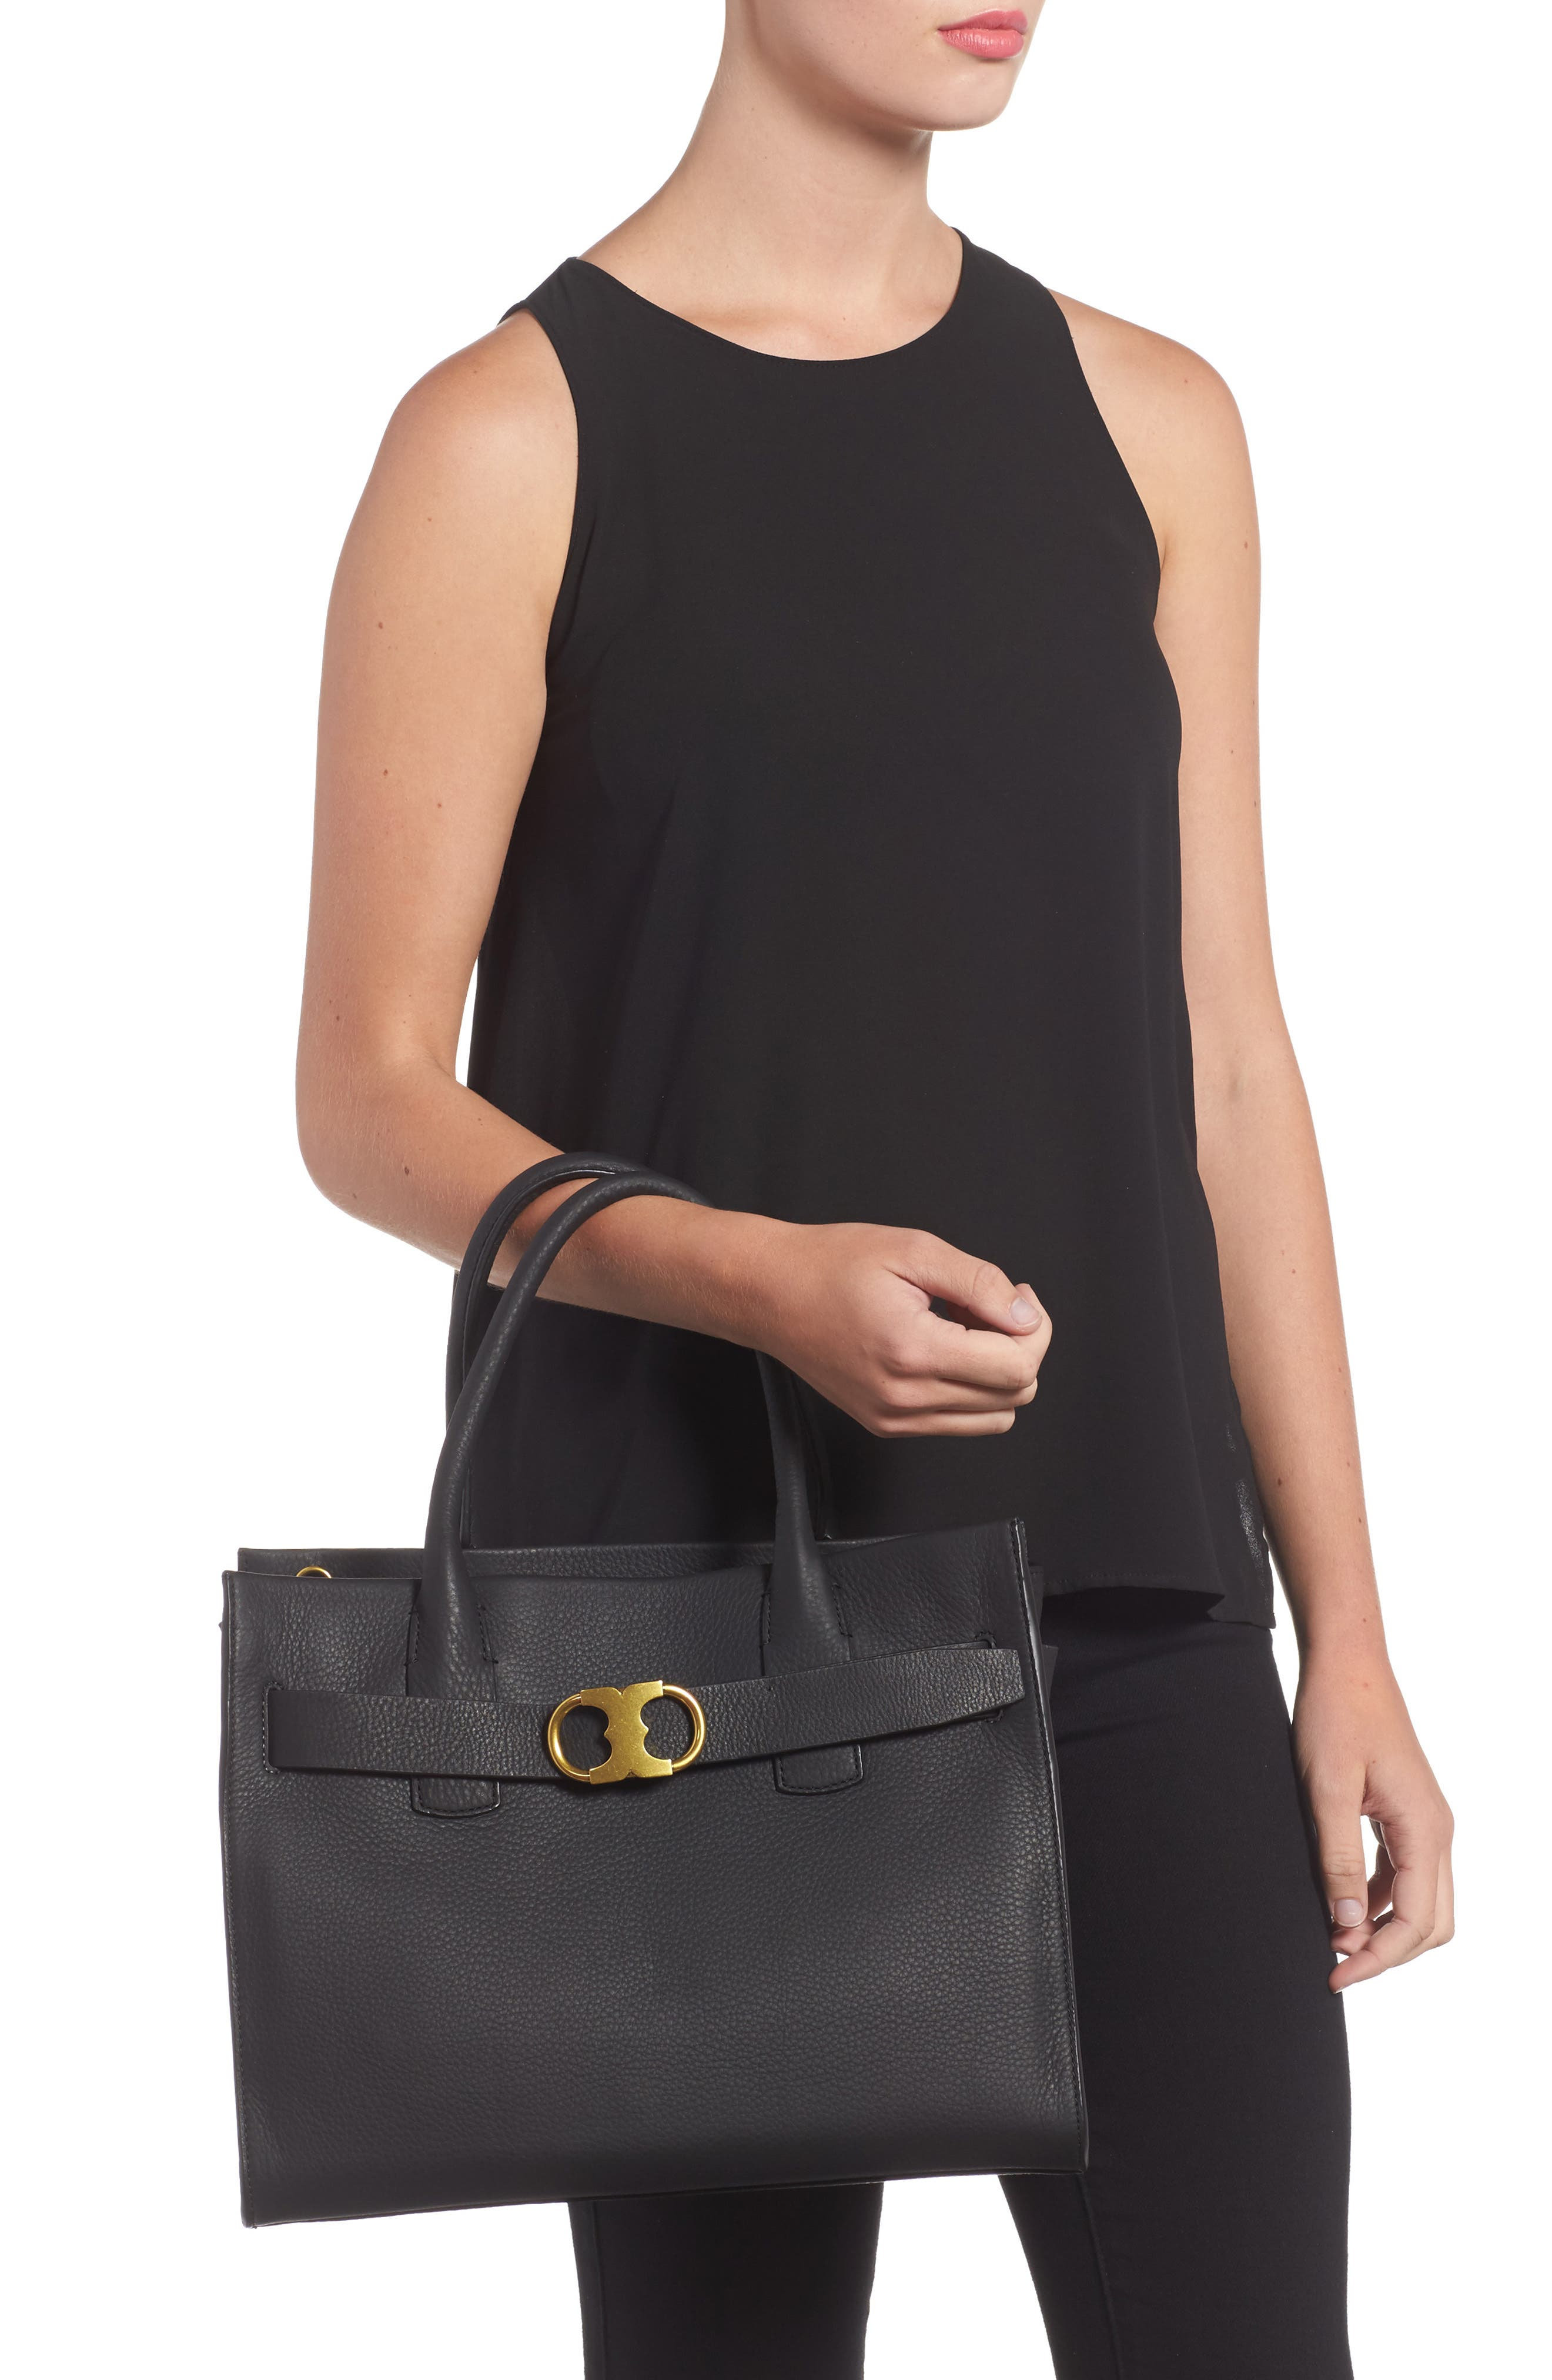 TORY BURCH,                             Gemini Link Leather Tote,                             Alternate thumbnail 2, color,                             001